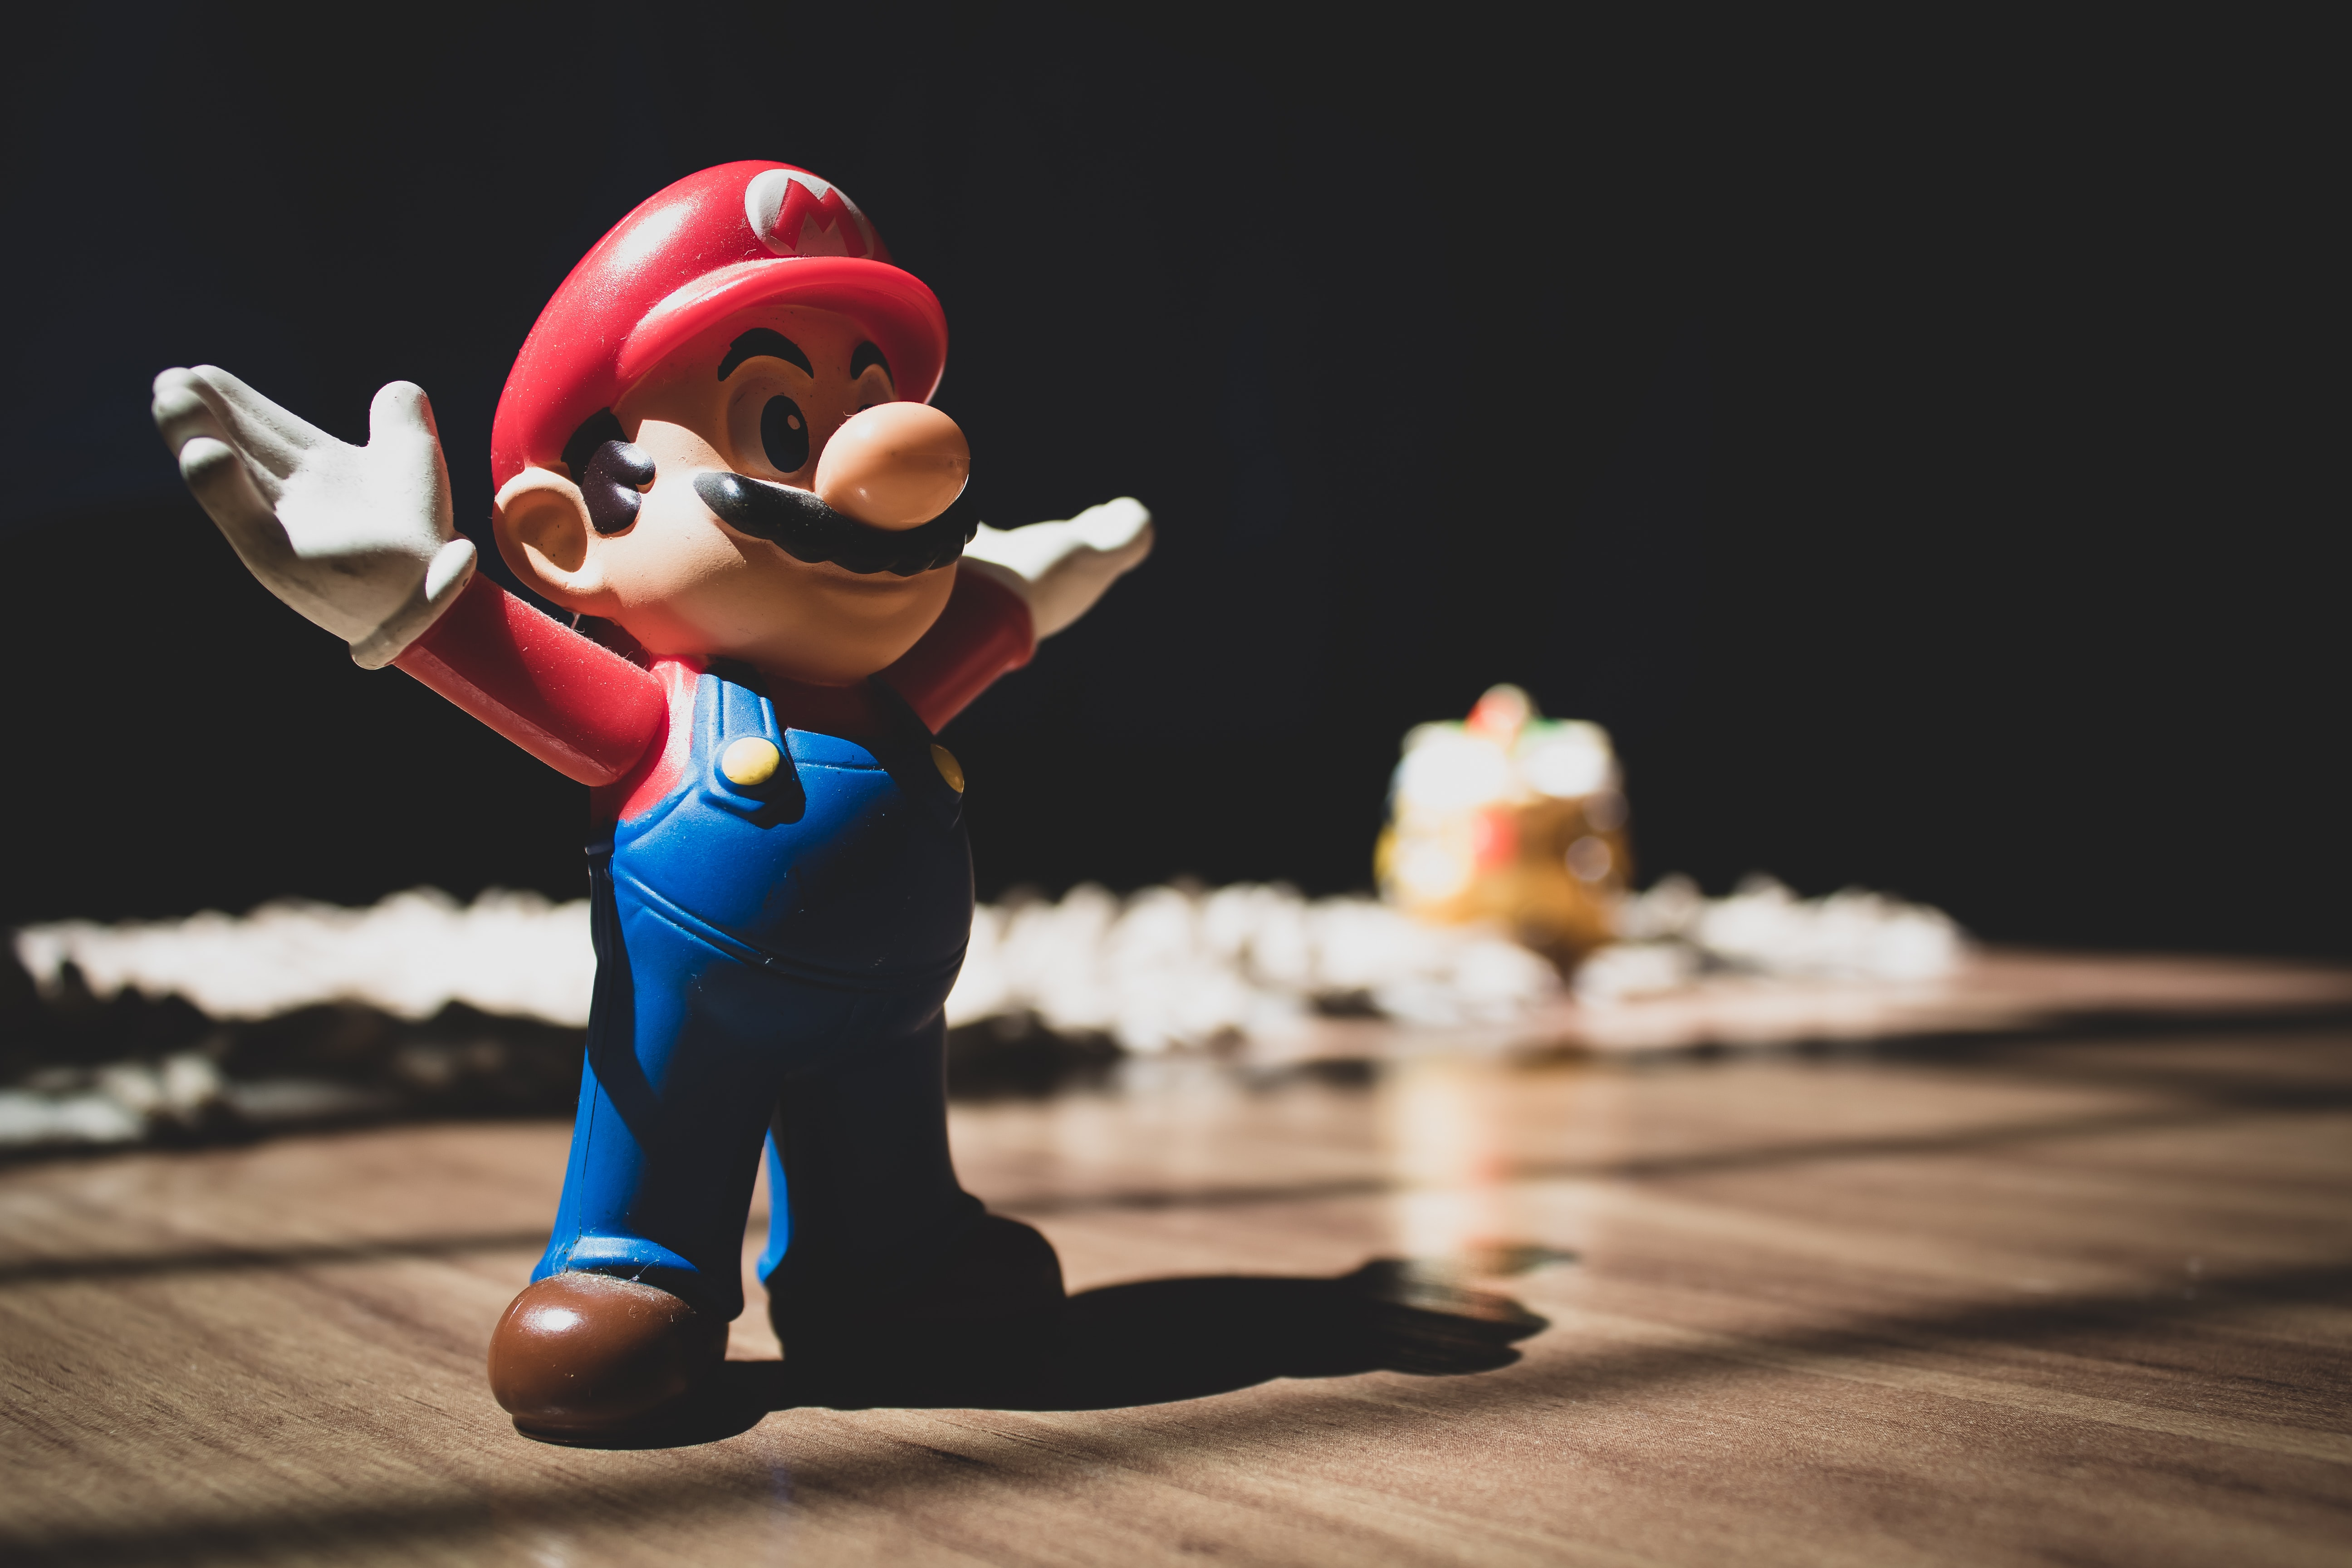 Super Mario figurine on brown surface